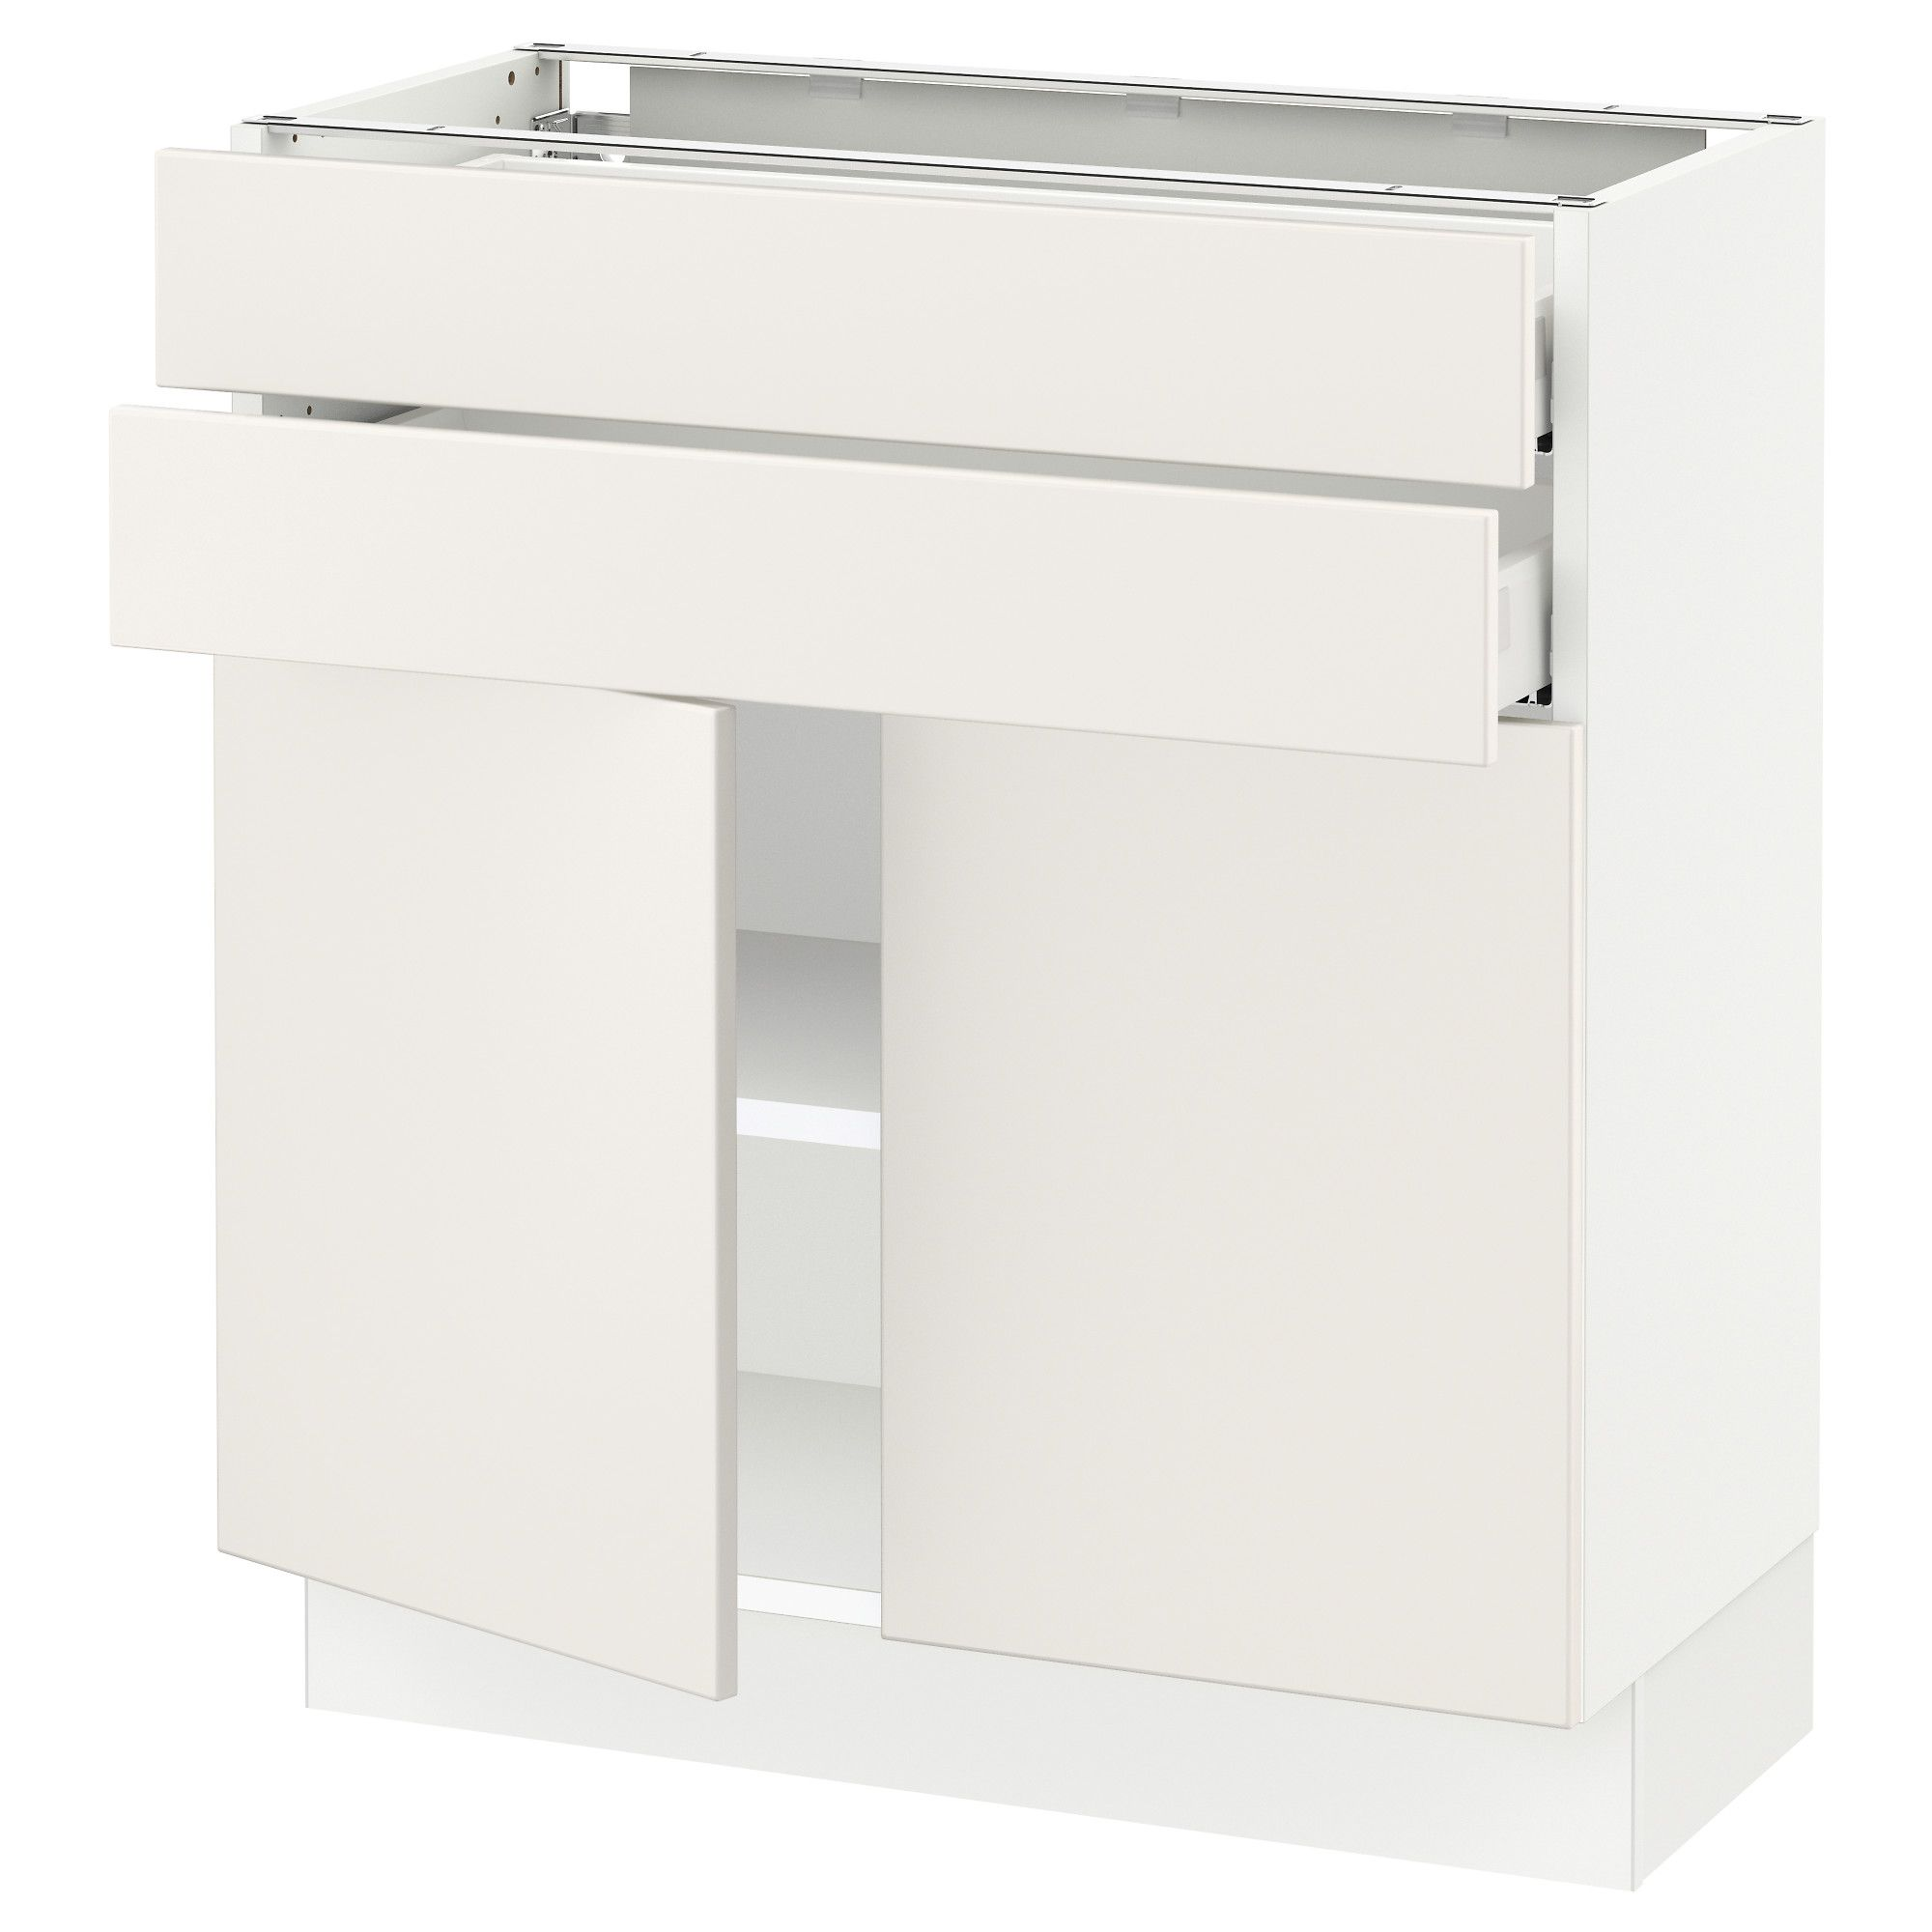 IKEA - SEKTION white Base cabinet with 2 doors/2 drawers Frame colour: